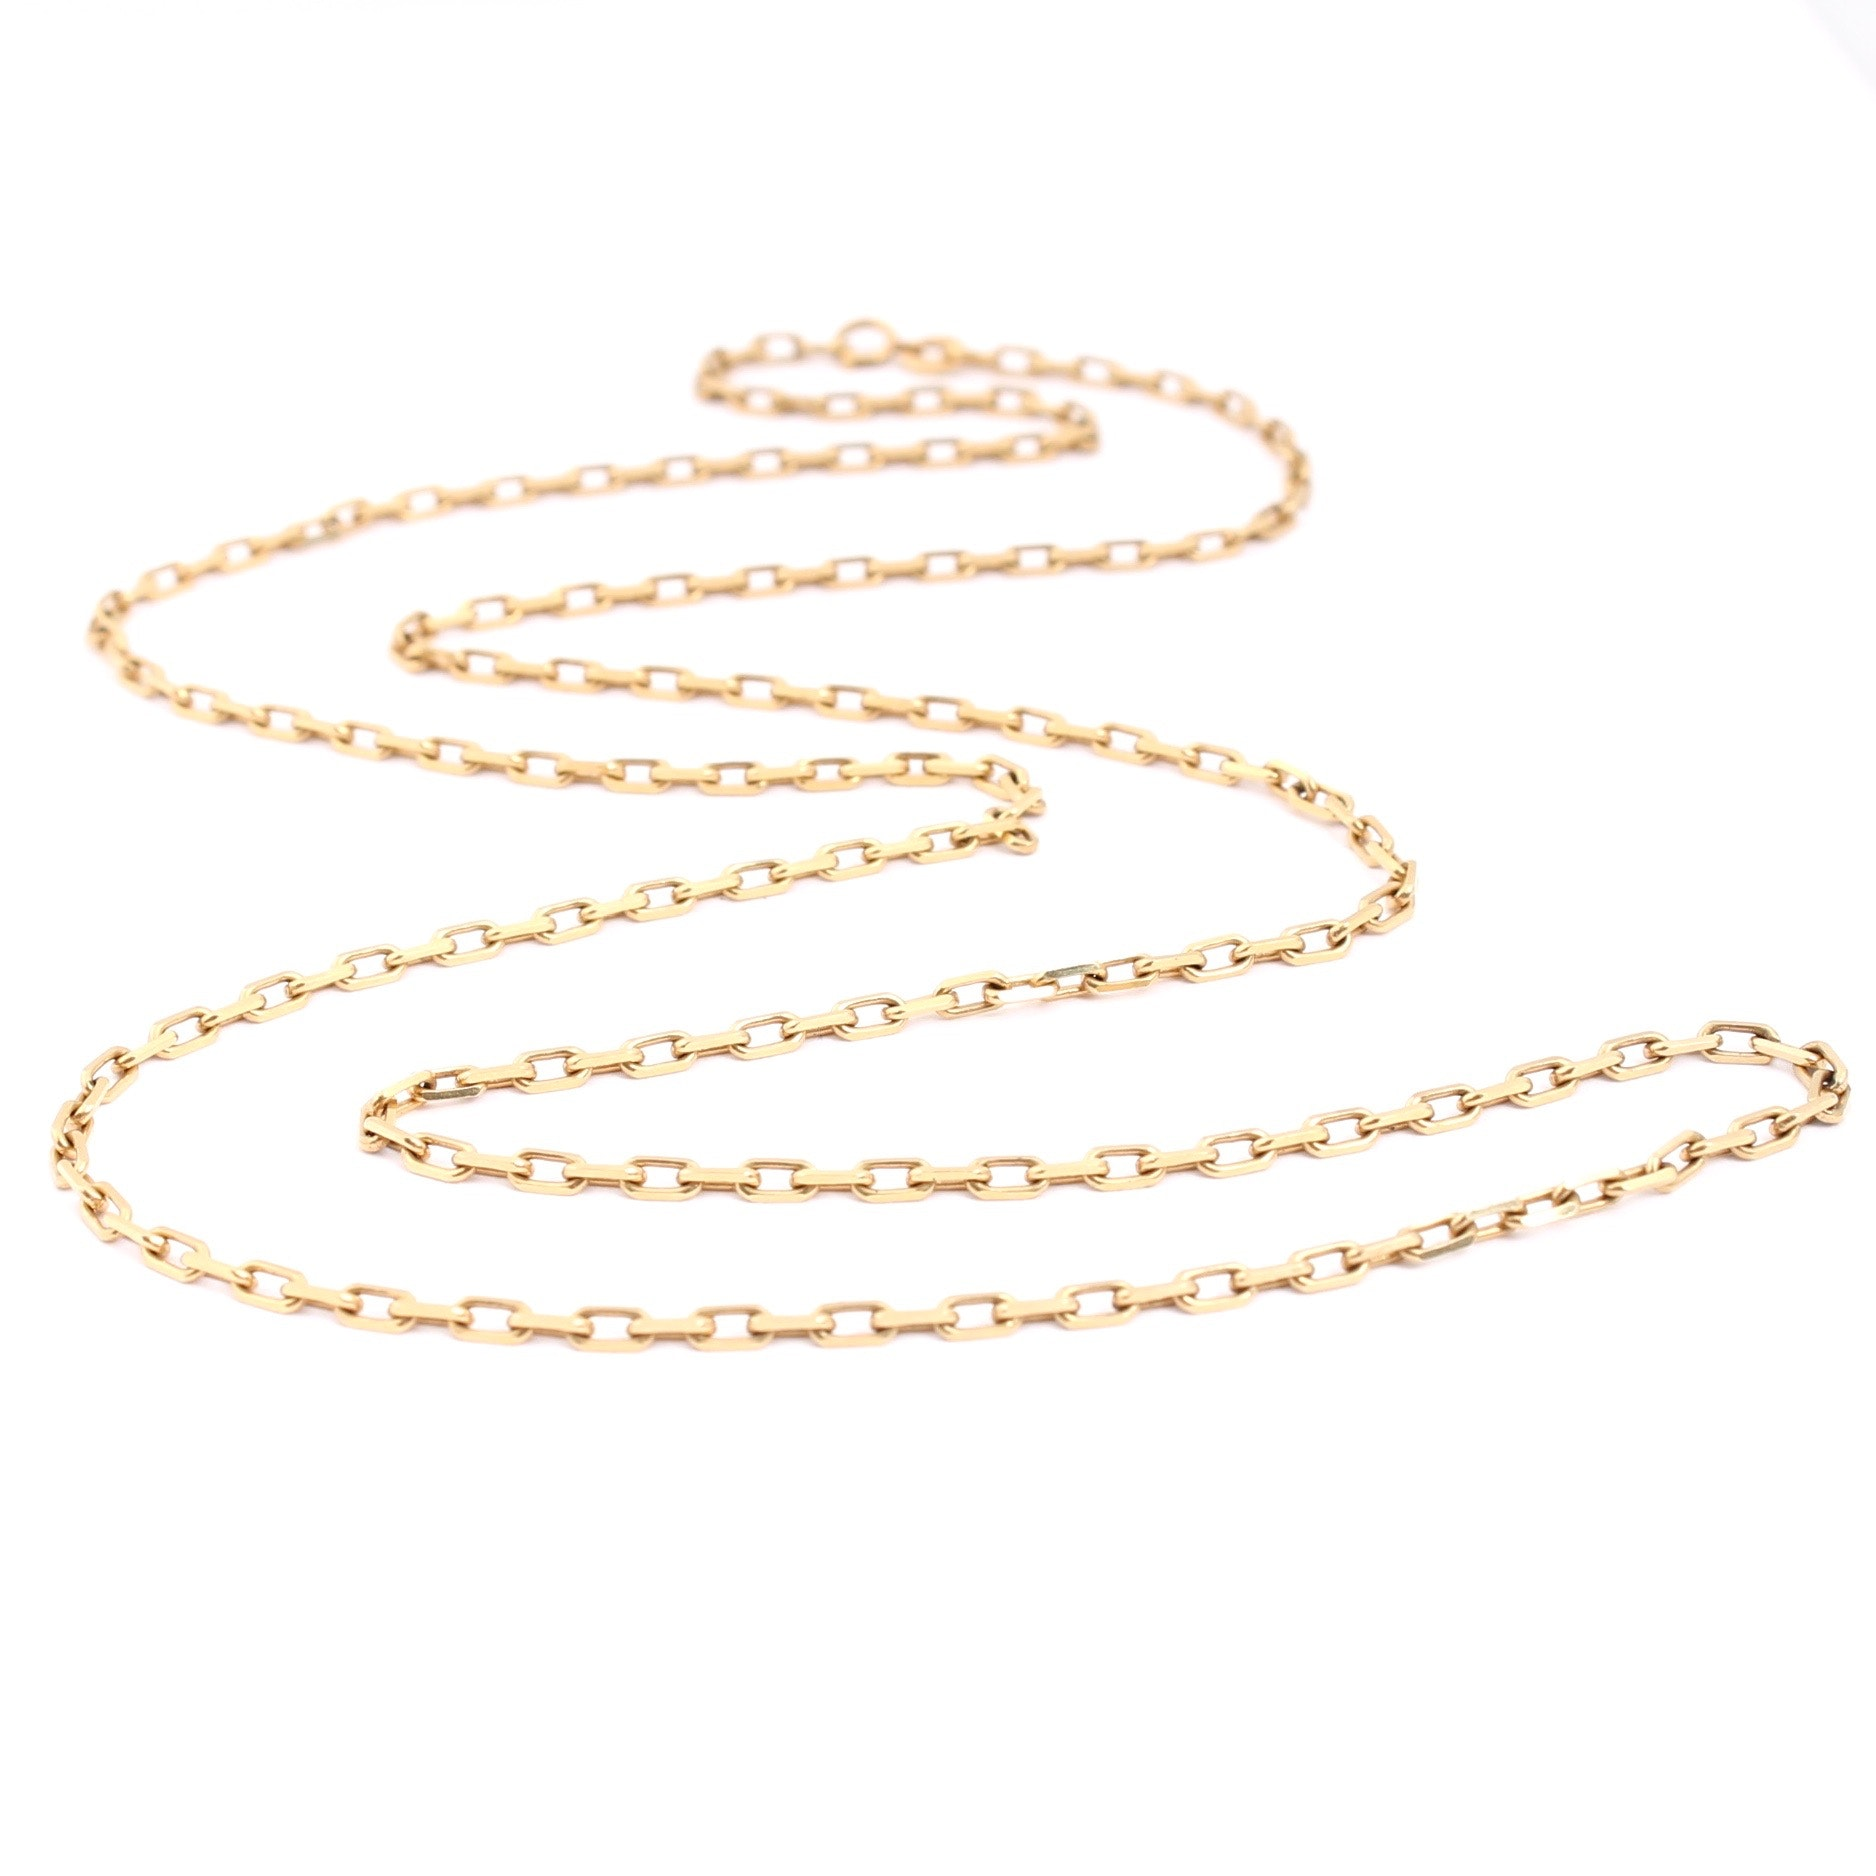 Balestra 18K Yellow Gold Drawn Cable Link Necklace Chain